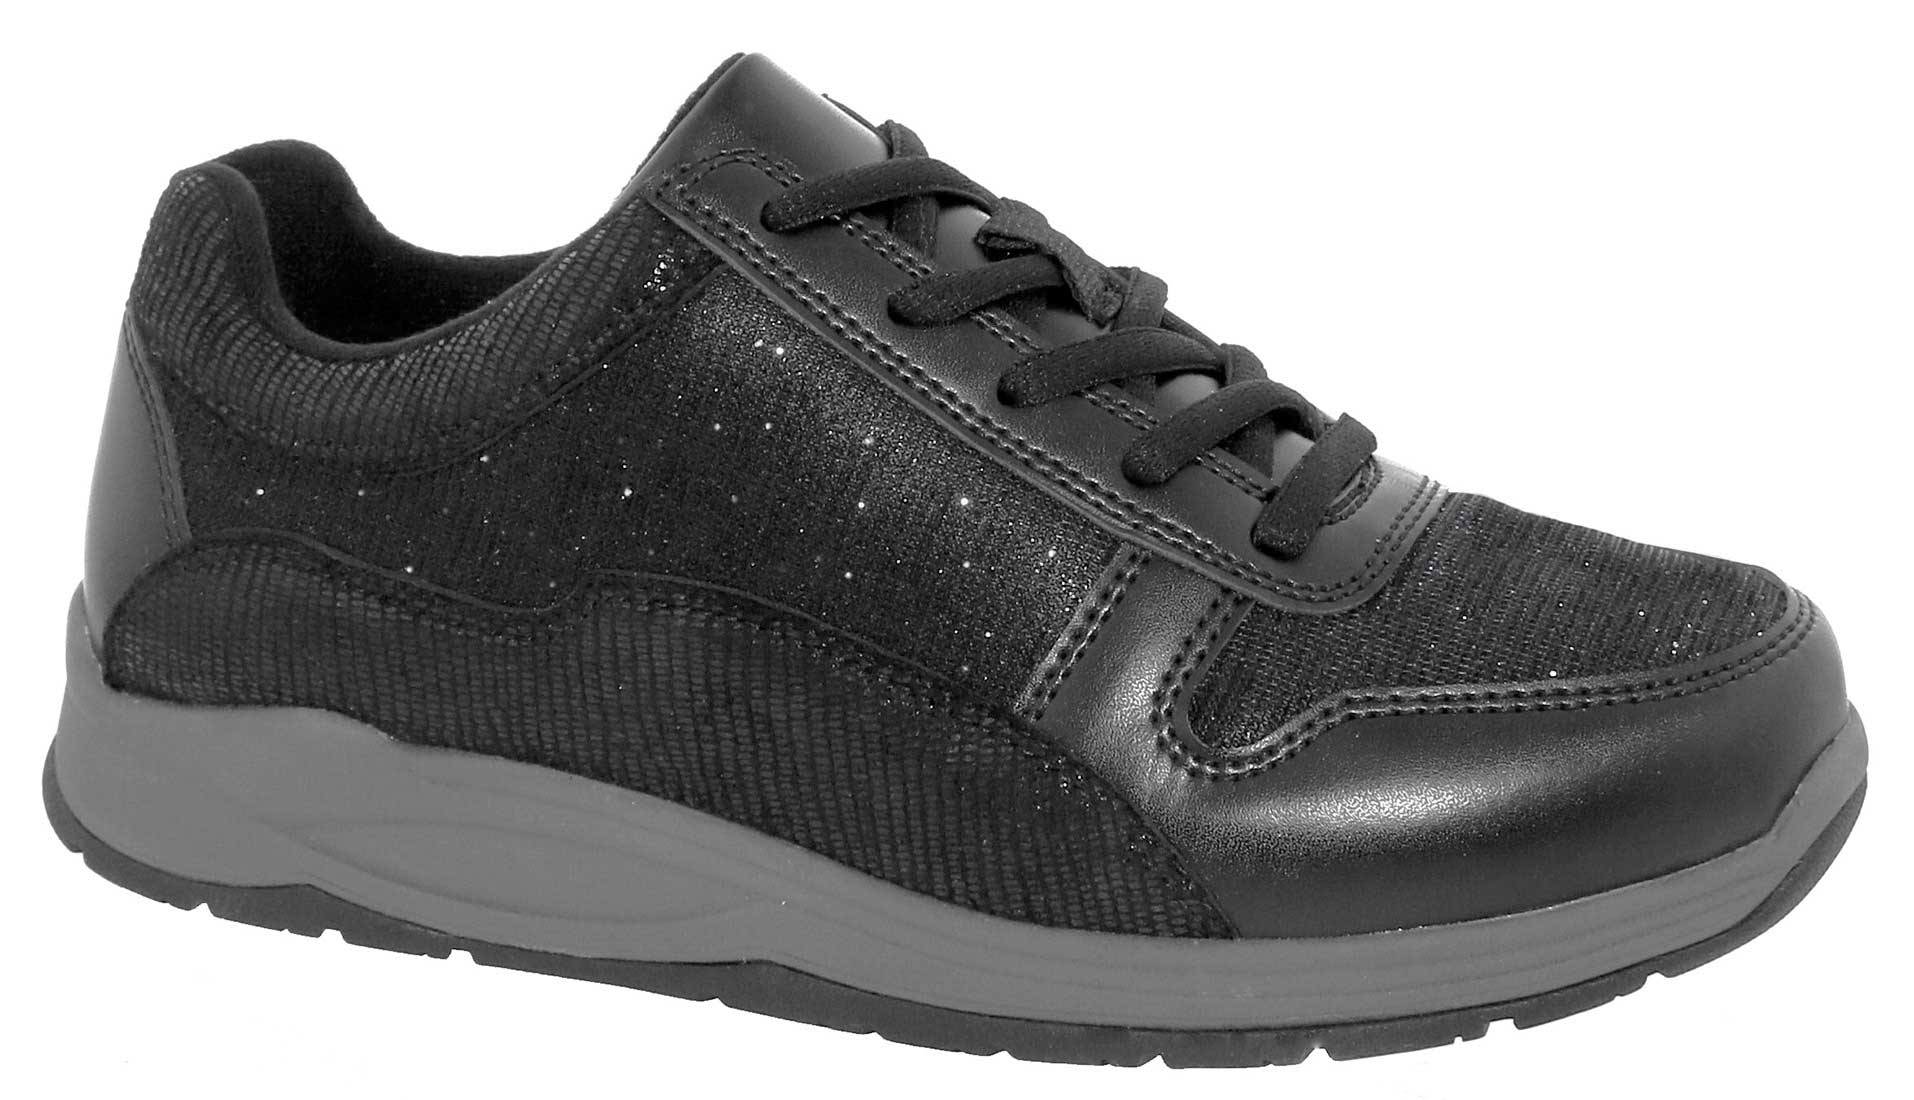 Footsaver Rummy - Black/Leather/Mesh